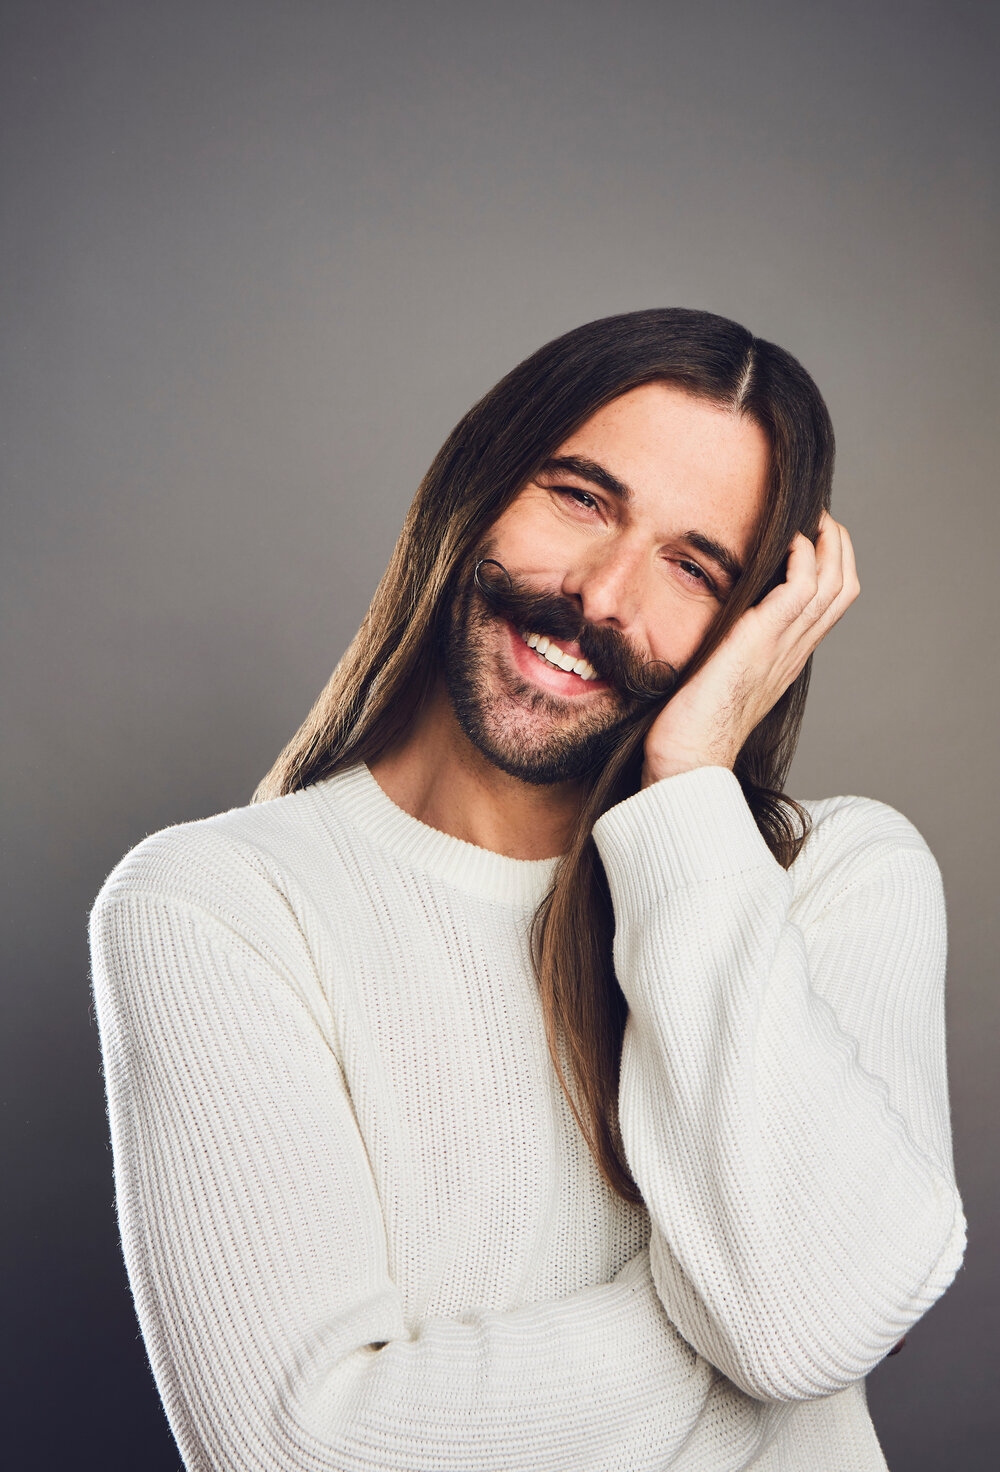 Portrait of Jonathan Van Ness smiling while wearing white sweater in front of a faded grey background